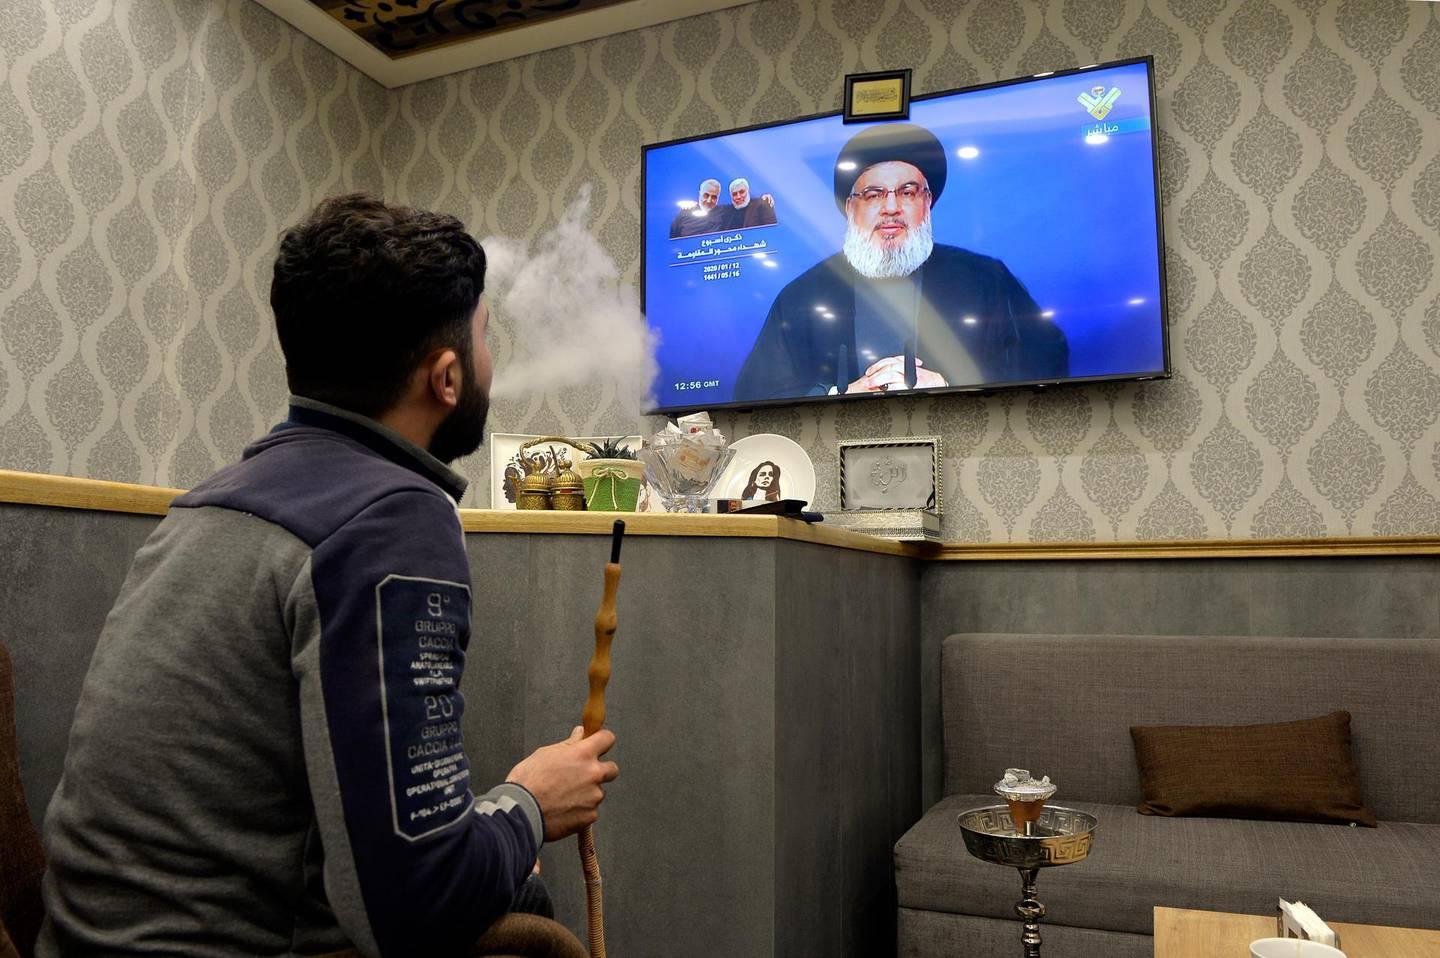 epa08122250 A Lebanese man smokes water pipe as he watches the speech of Hezbollah leader Hassan Nasrallah on a television screen at a cafe to mark the one-week death of slain the Iranian Revolutionary Guards Corps (IRGC) Lieutenant general and commander of the Quds Force Qasem Soleimani in Beirut, Lebanon, 12 January 2020. The US Pentagon announced that Iran's Quds Force leader Soleimani and Iraqi militia commander Abu Mahdi al-Muhandis were killed on 03 January 2020 following a US airstrike at Baghdad's international airport.  EPA/WAEL HAMZEH